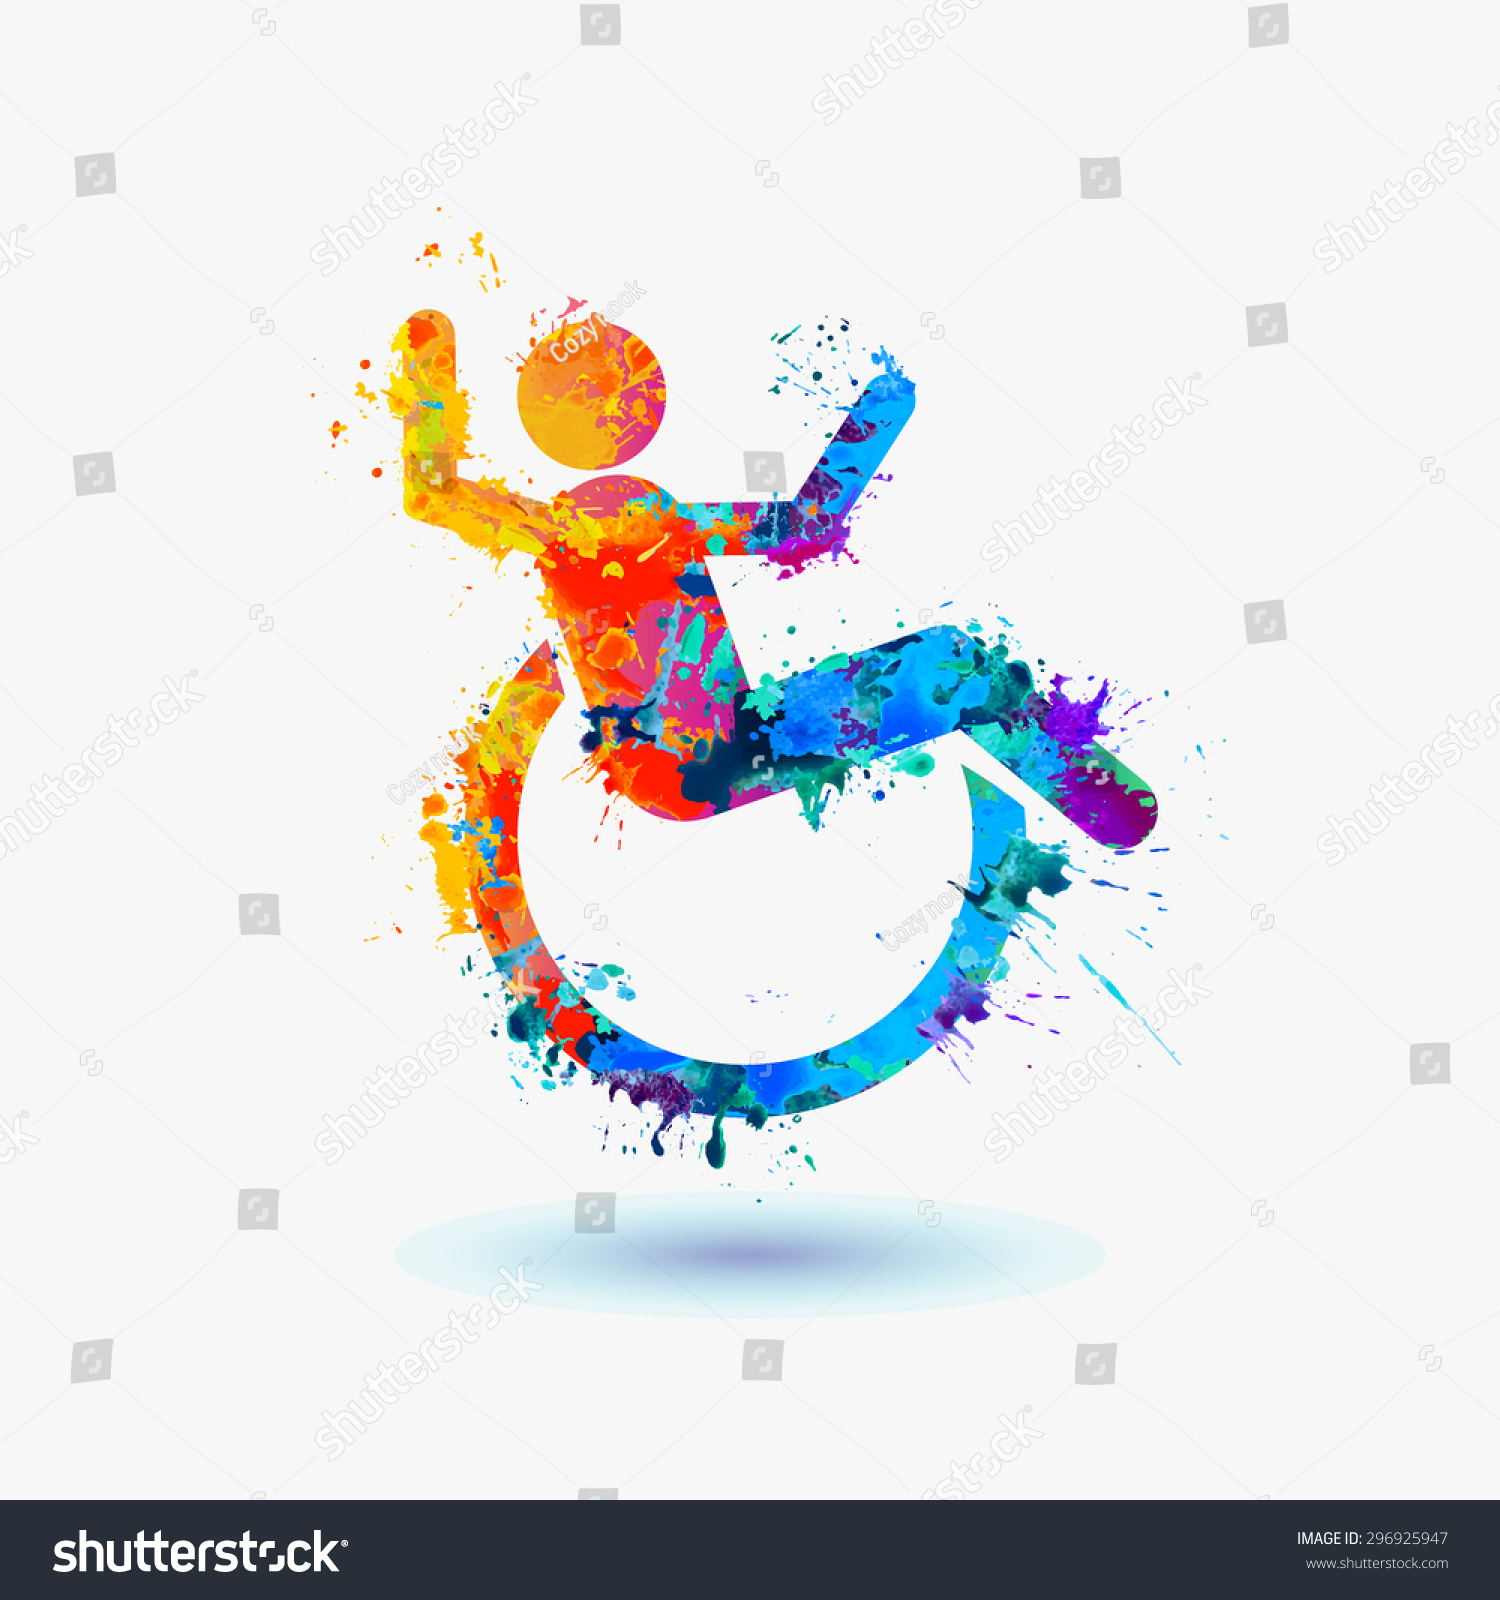 stock-vector-happy-disabled-people-life-asserting-watercolor-sign-vector-296925947.jpg